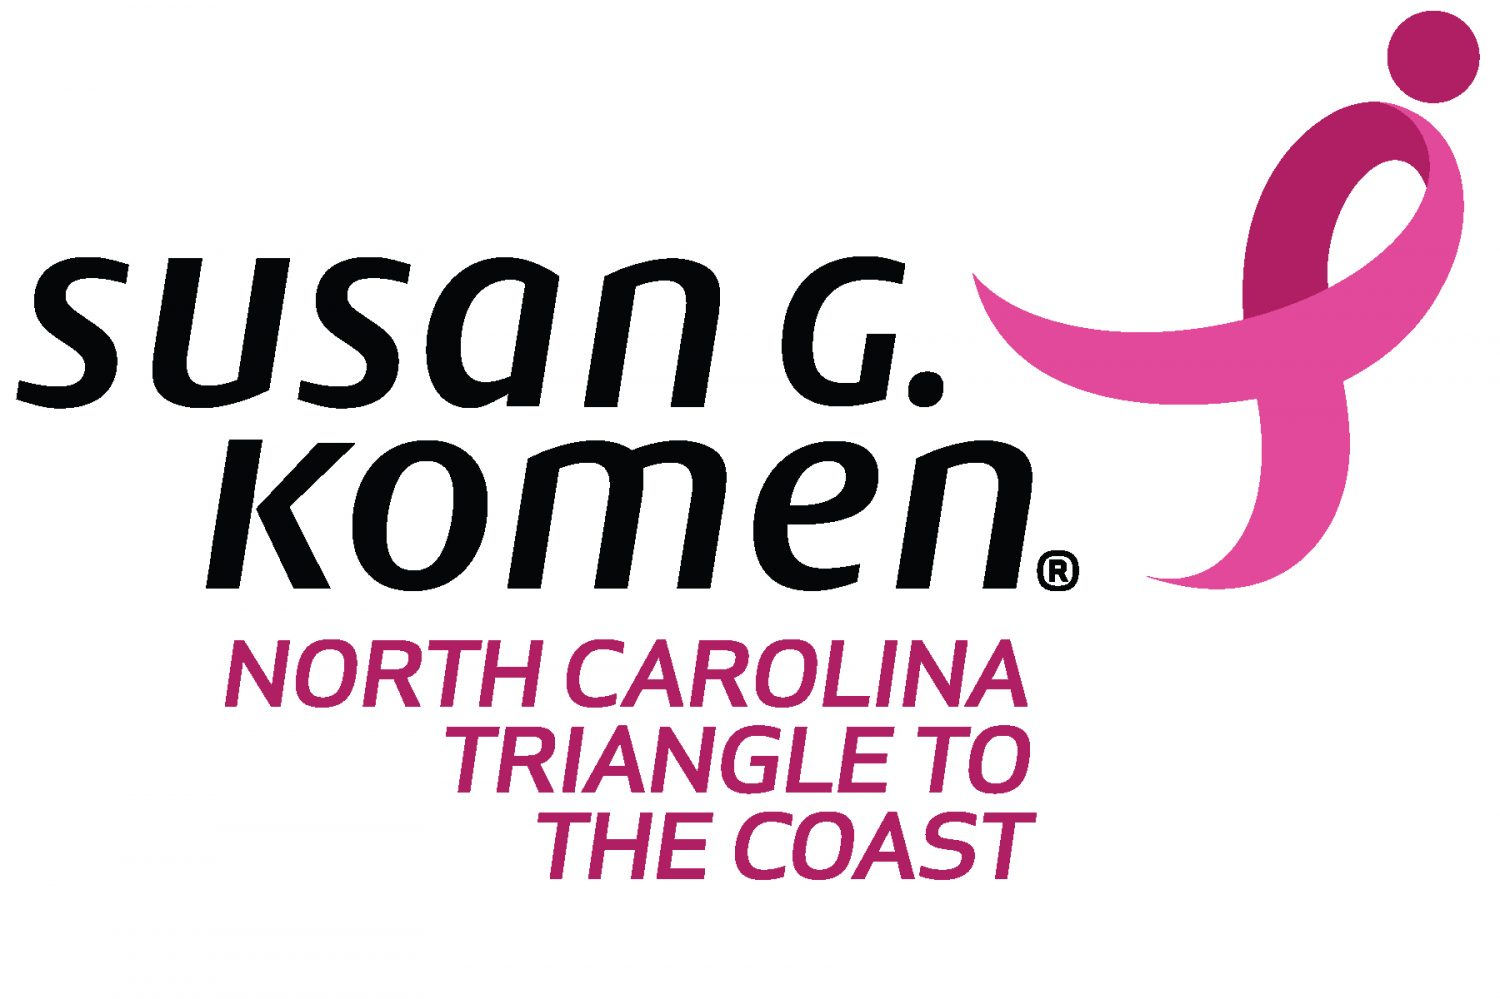 Susan G. Komen - North Carolina Triangle to the Coast